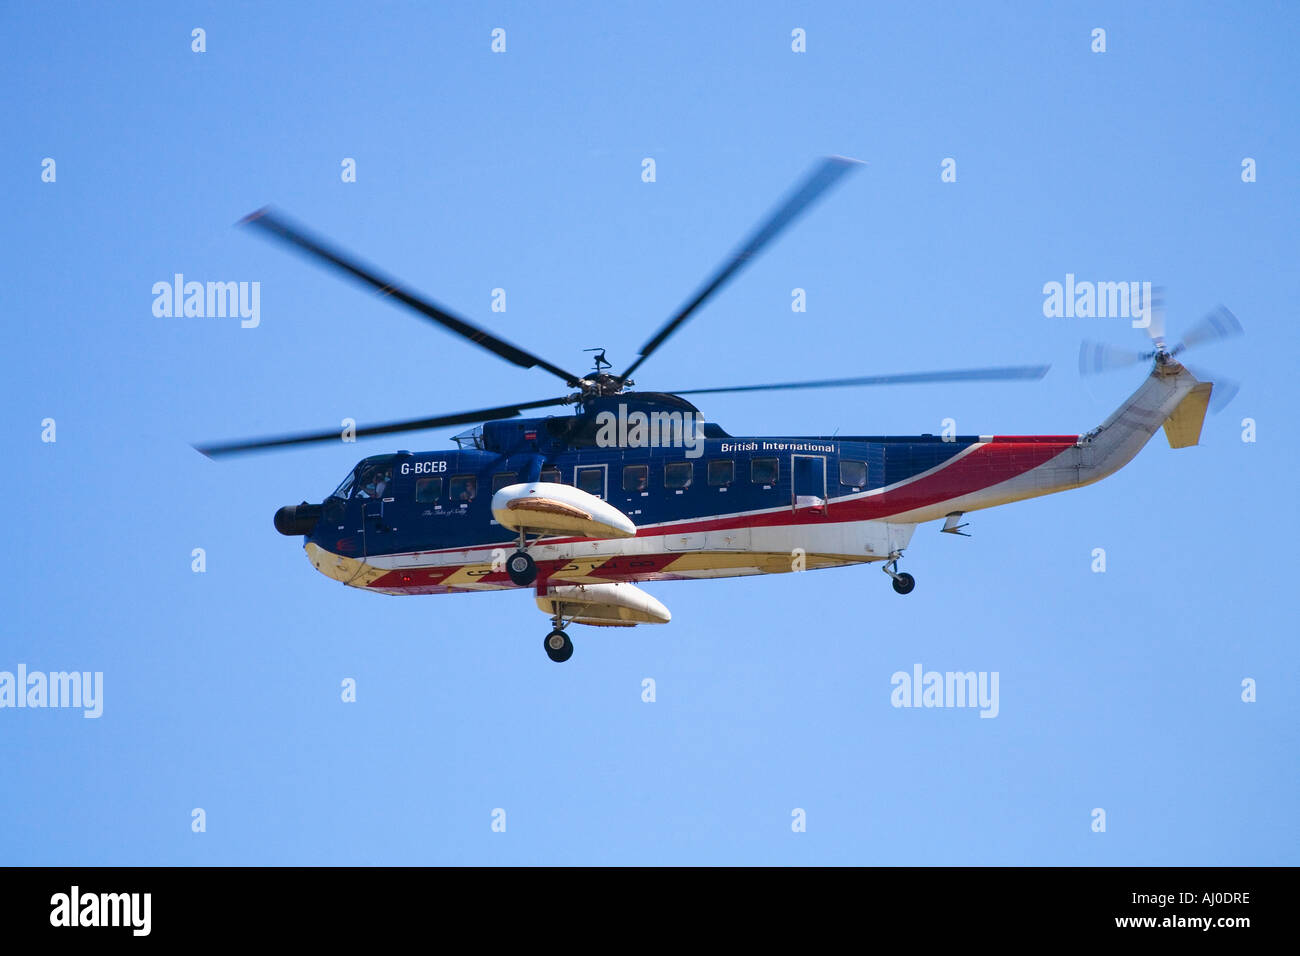 Helicopter landing at St Marys Airport on the Isles Of Scilly Cornwall England UK United Kingdom GB Great Britain British Isles - Stock Image